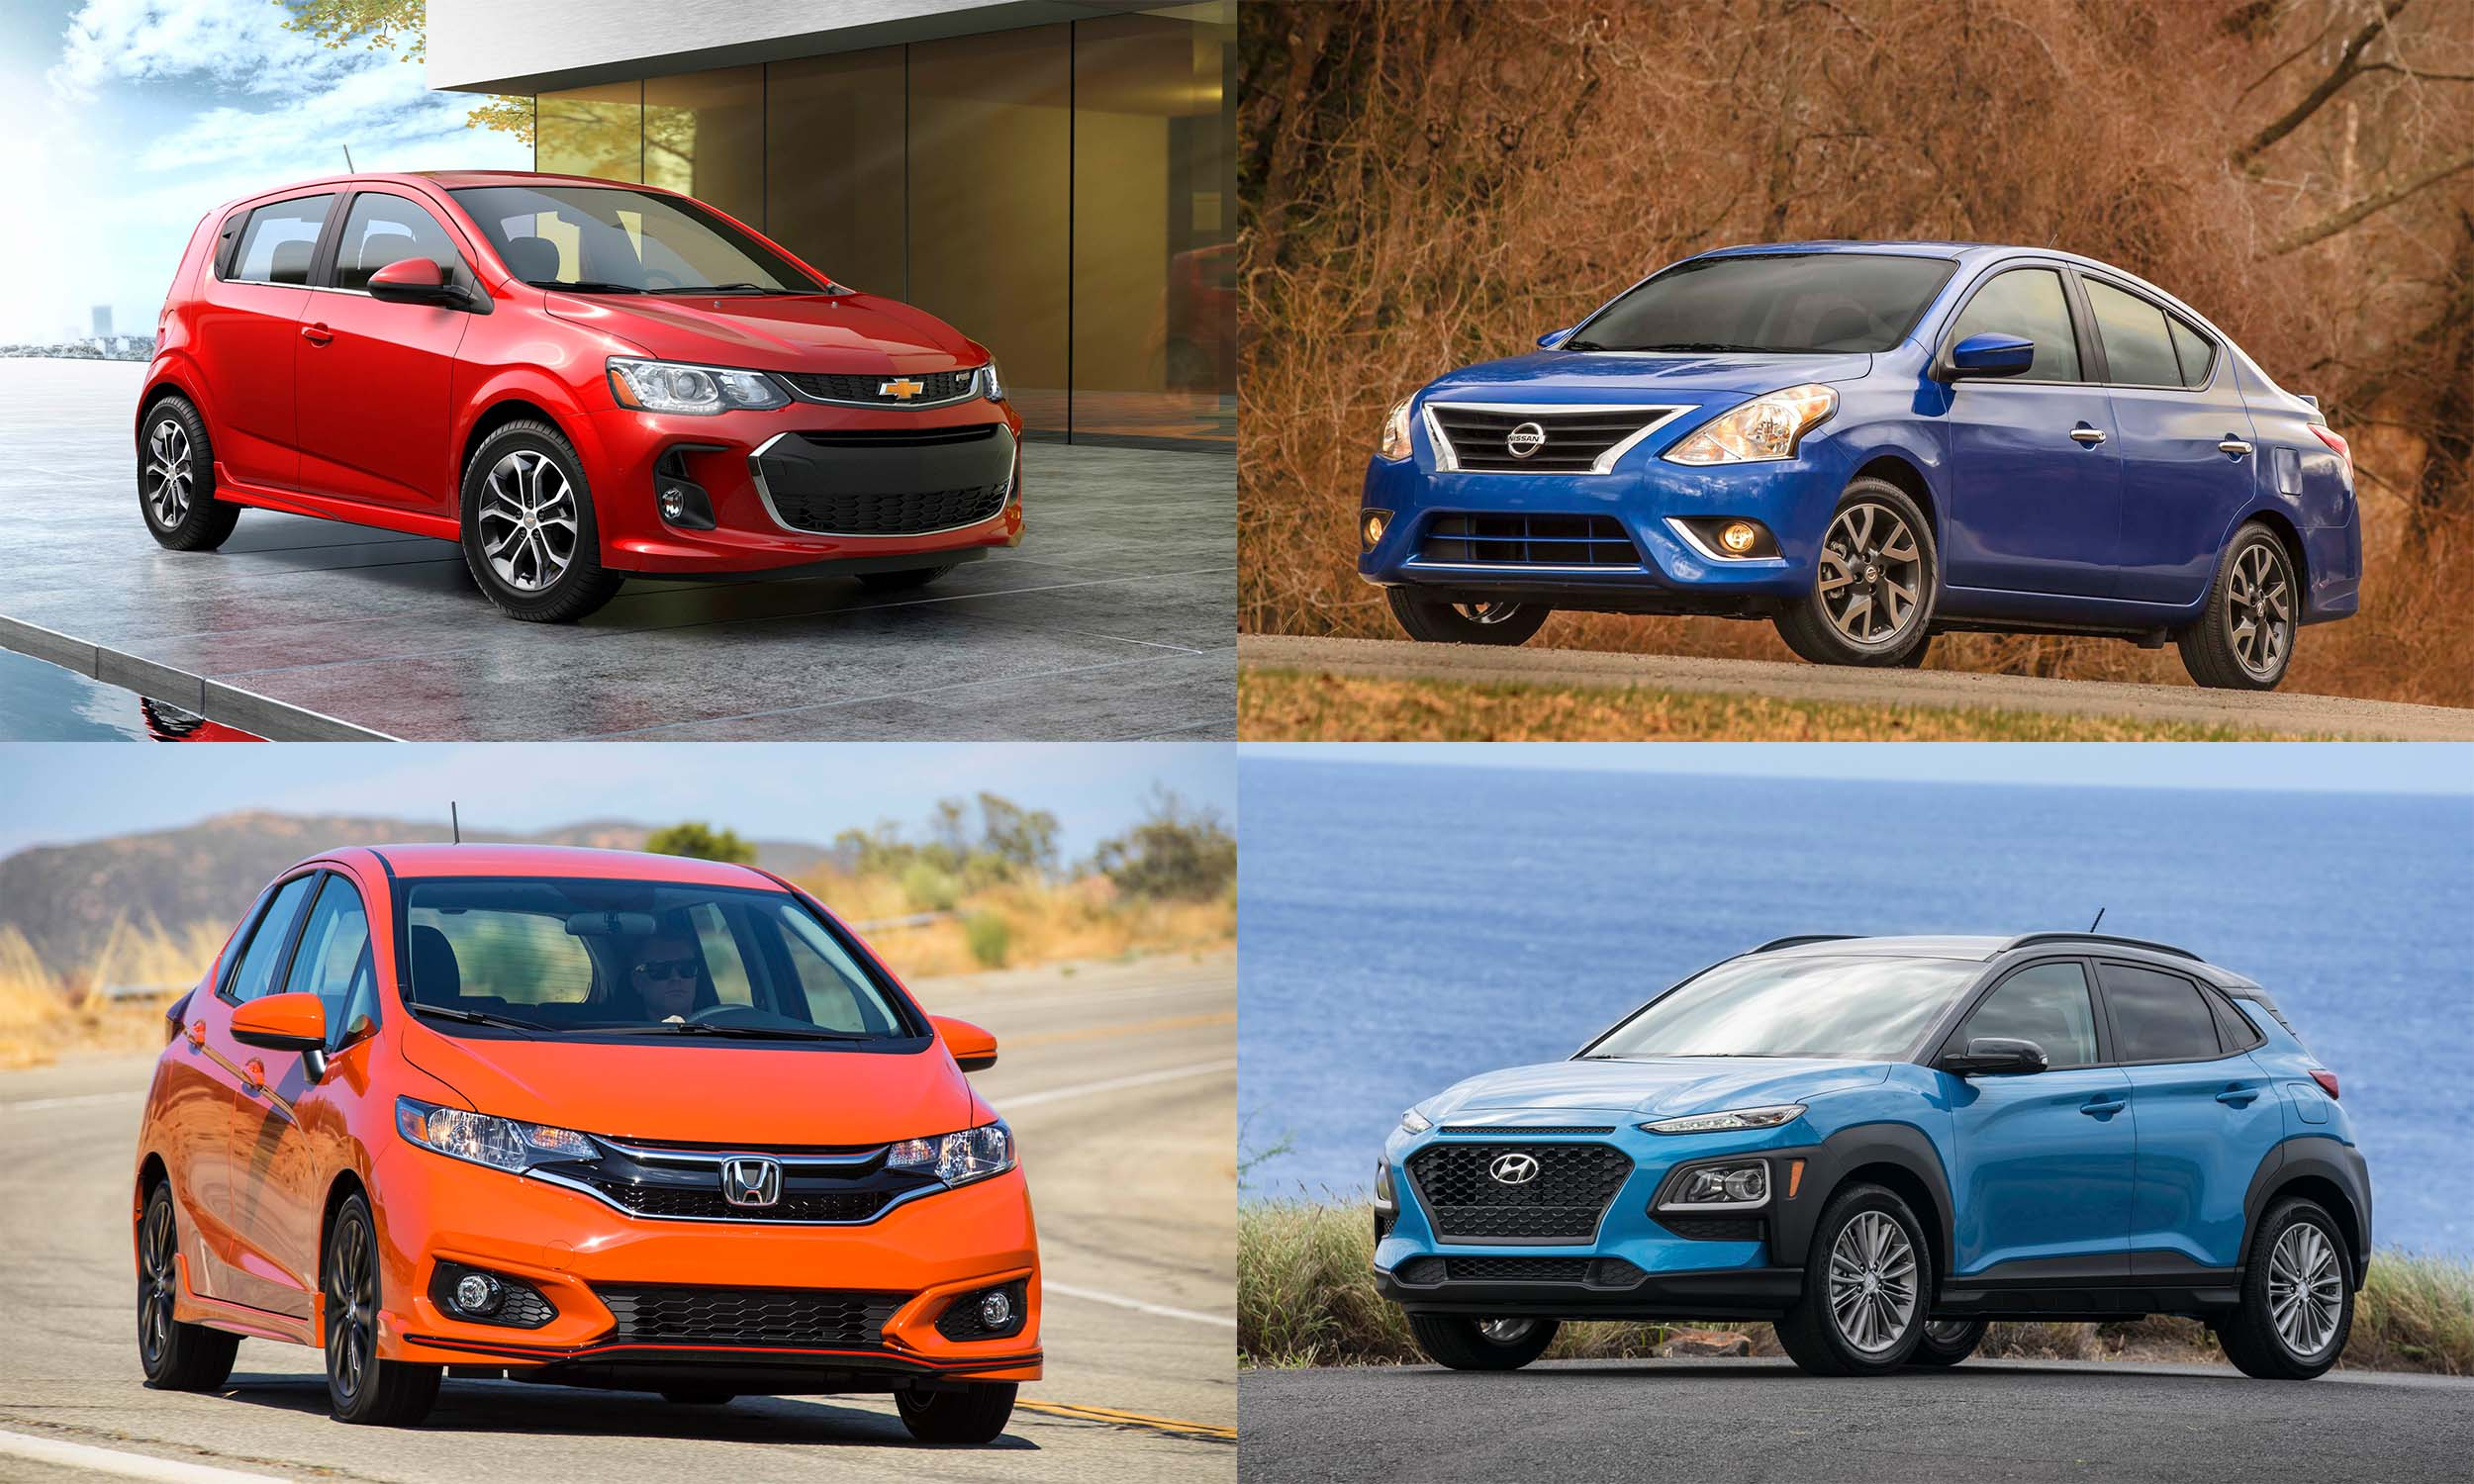 © General Motors, © American Honda Motors, © Nissan North America, © Automotive Content Experience